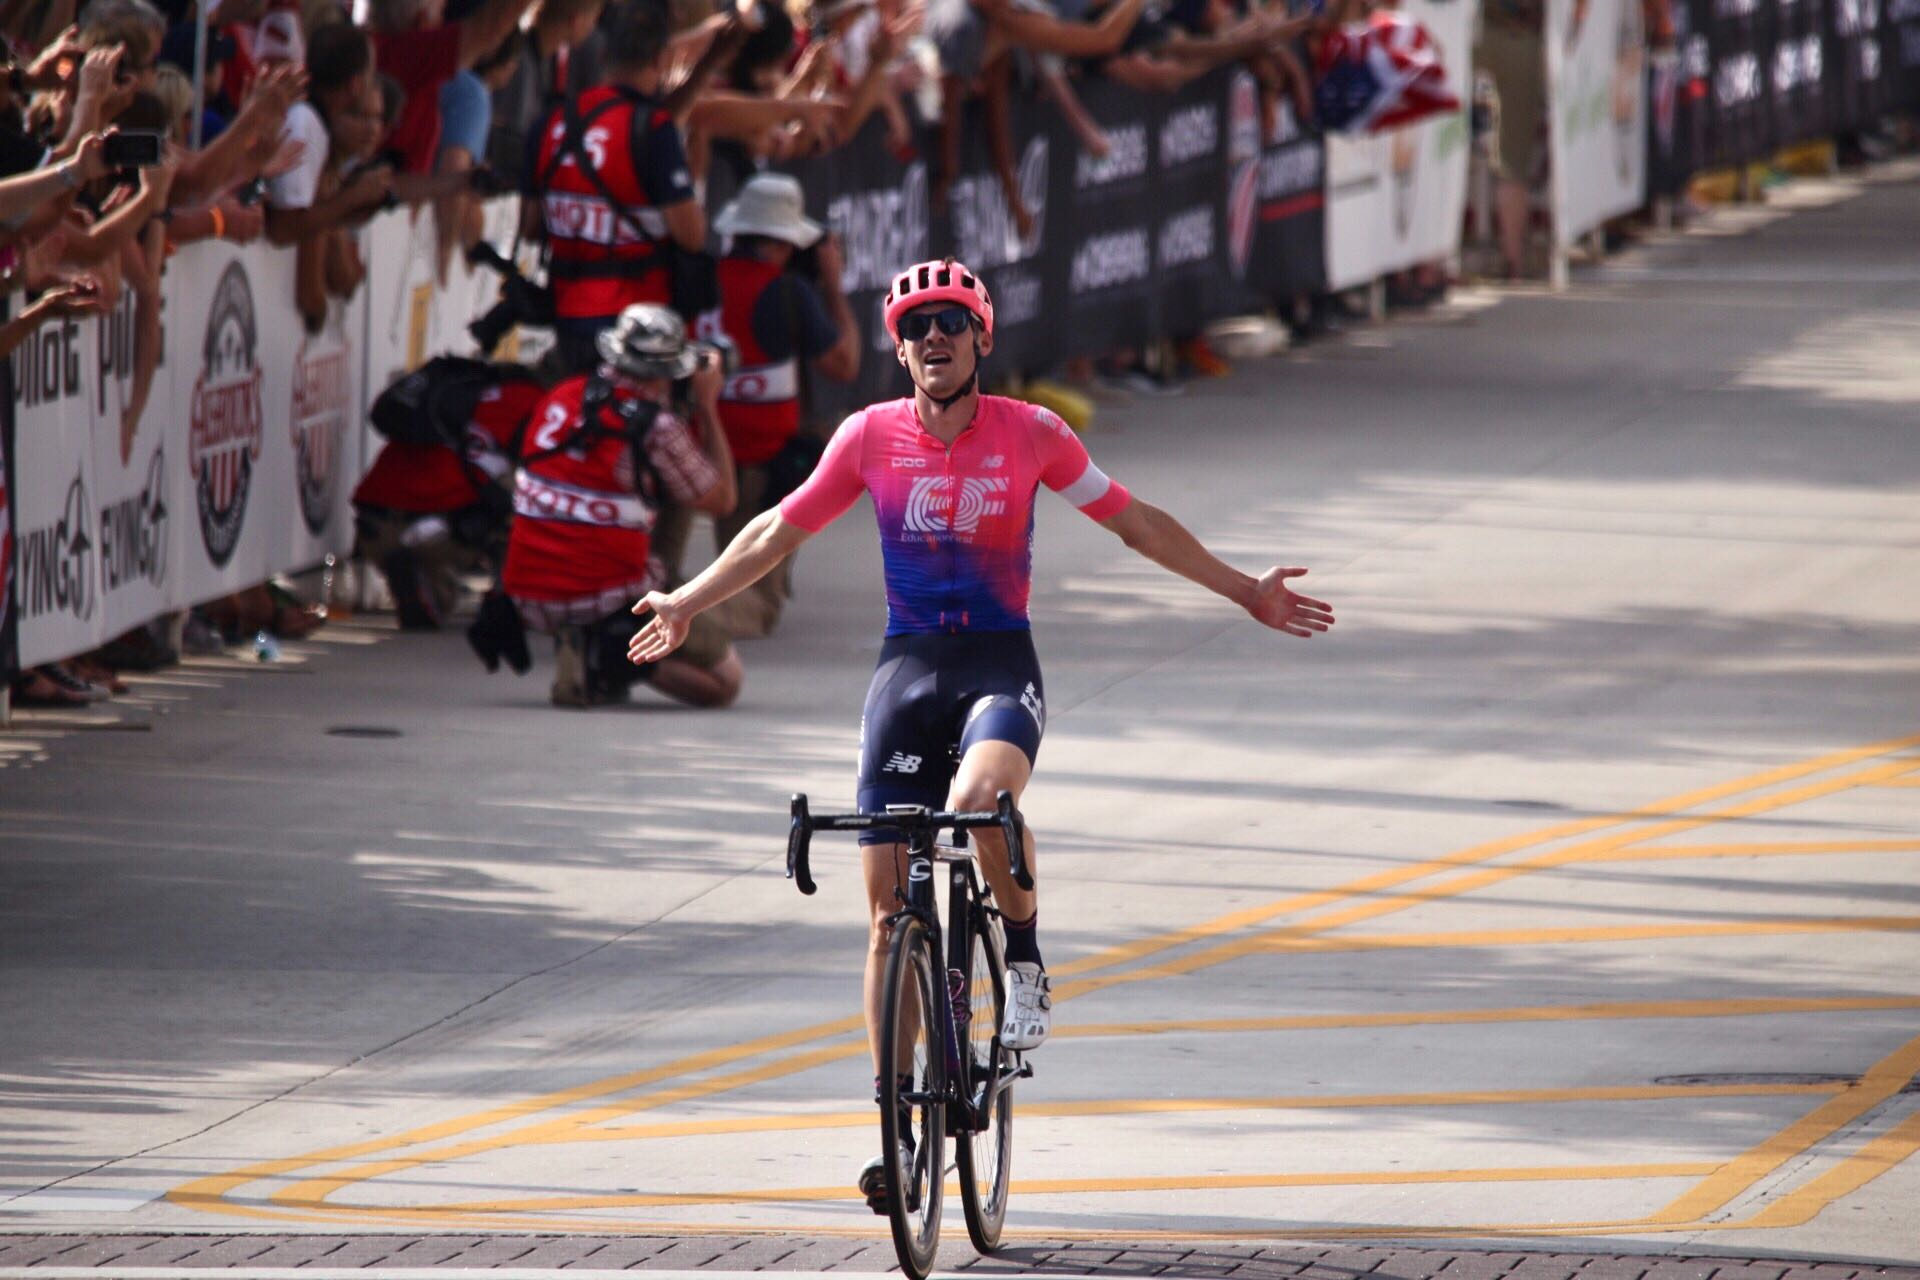 Alex Howes crosses the finish line to win the men's 2019 USA Cycling Pro Road National Championship on Sunday, June 30, 2019, in Knoxville, Tenn. (David Killebrew / WATE)